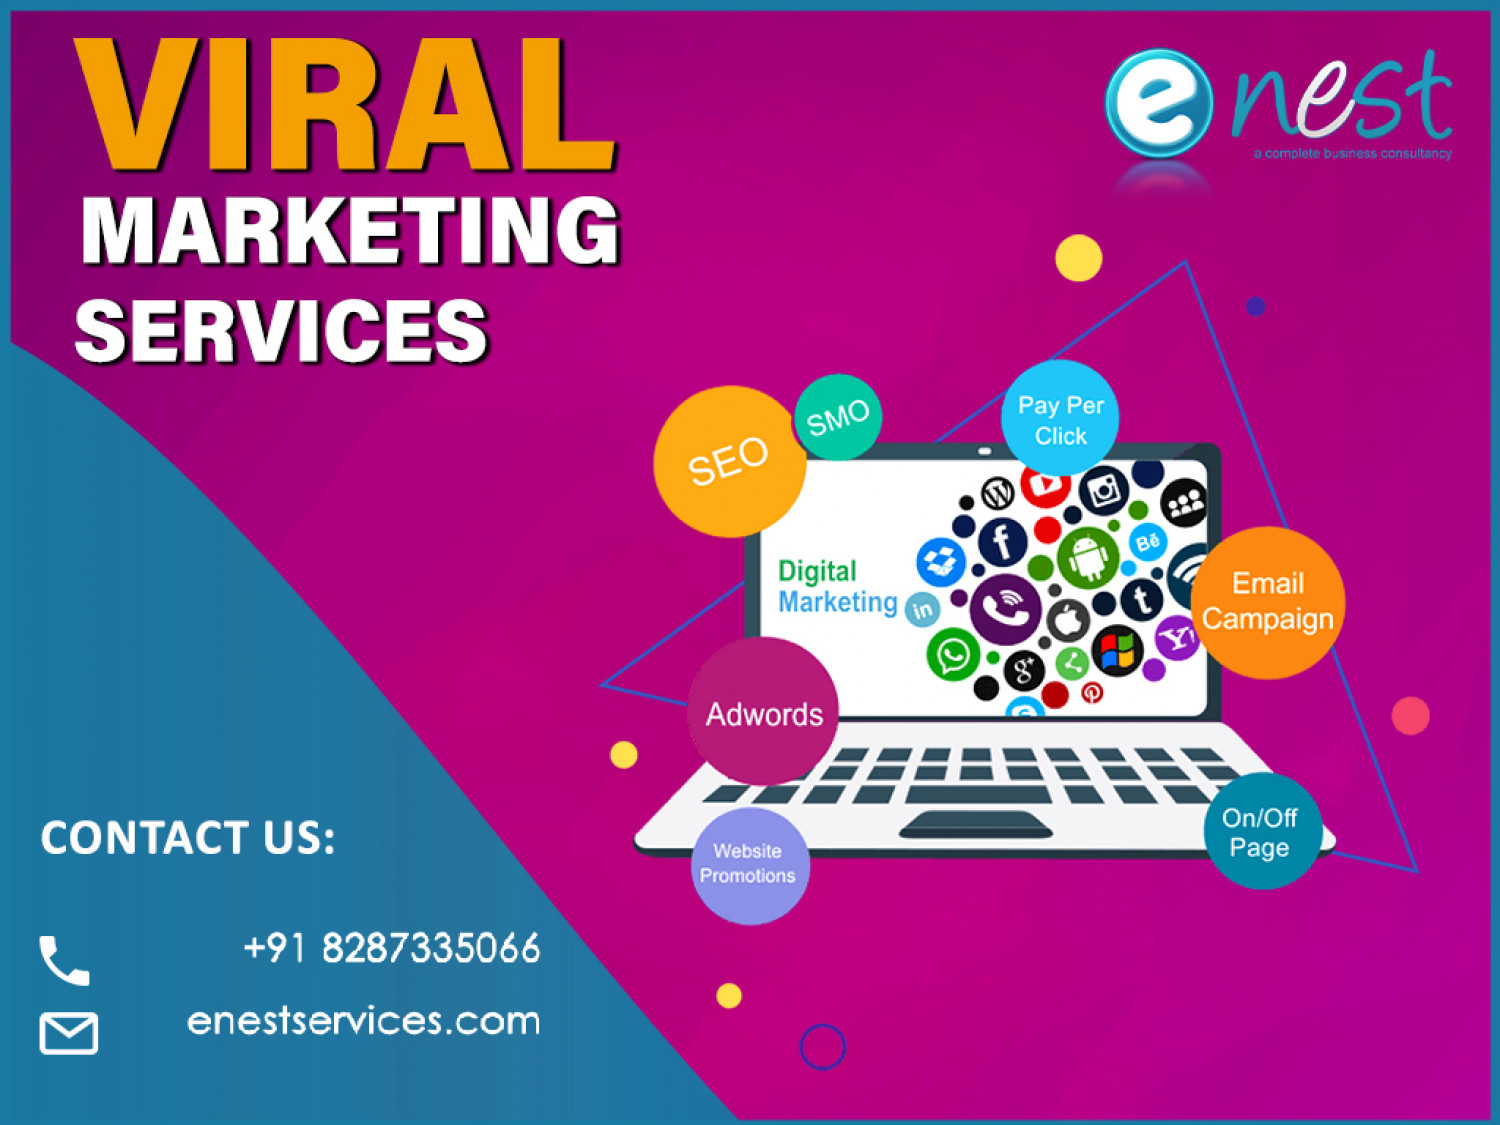 Viral Marketing Services Infographic